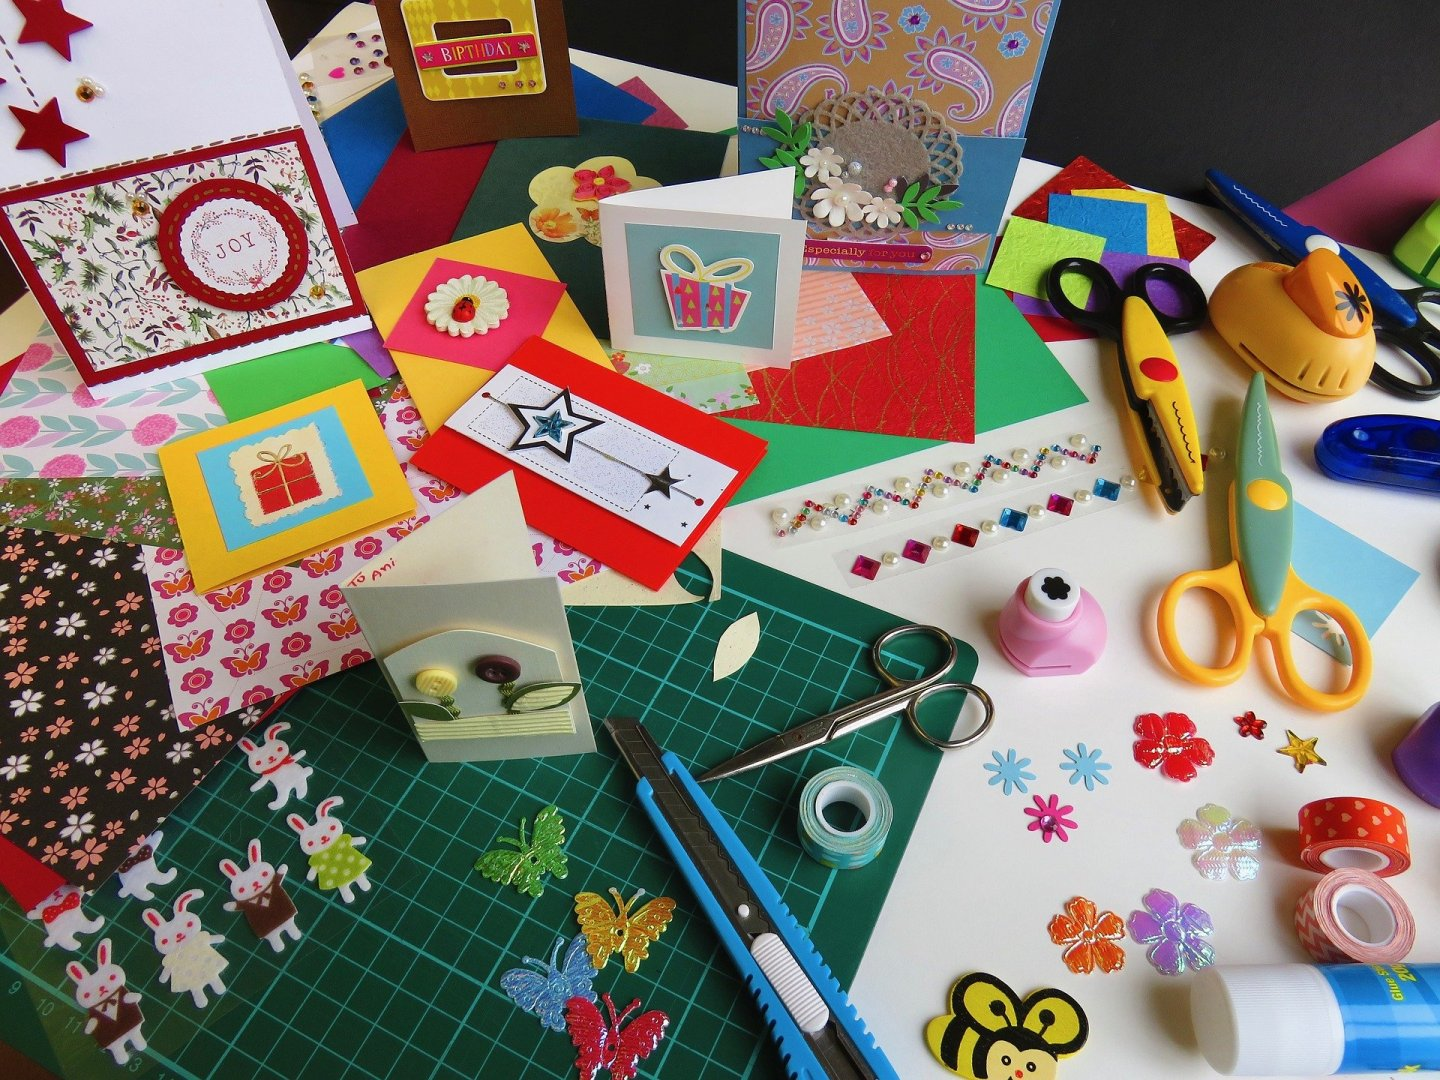 Flatlay of craft materials being used to make Christmas cards